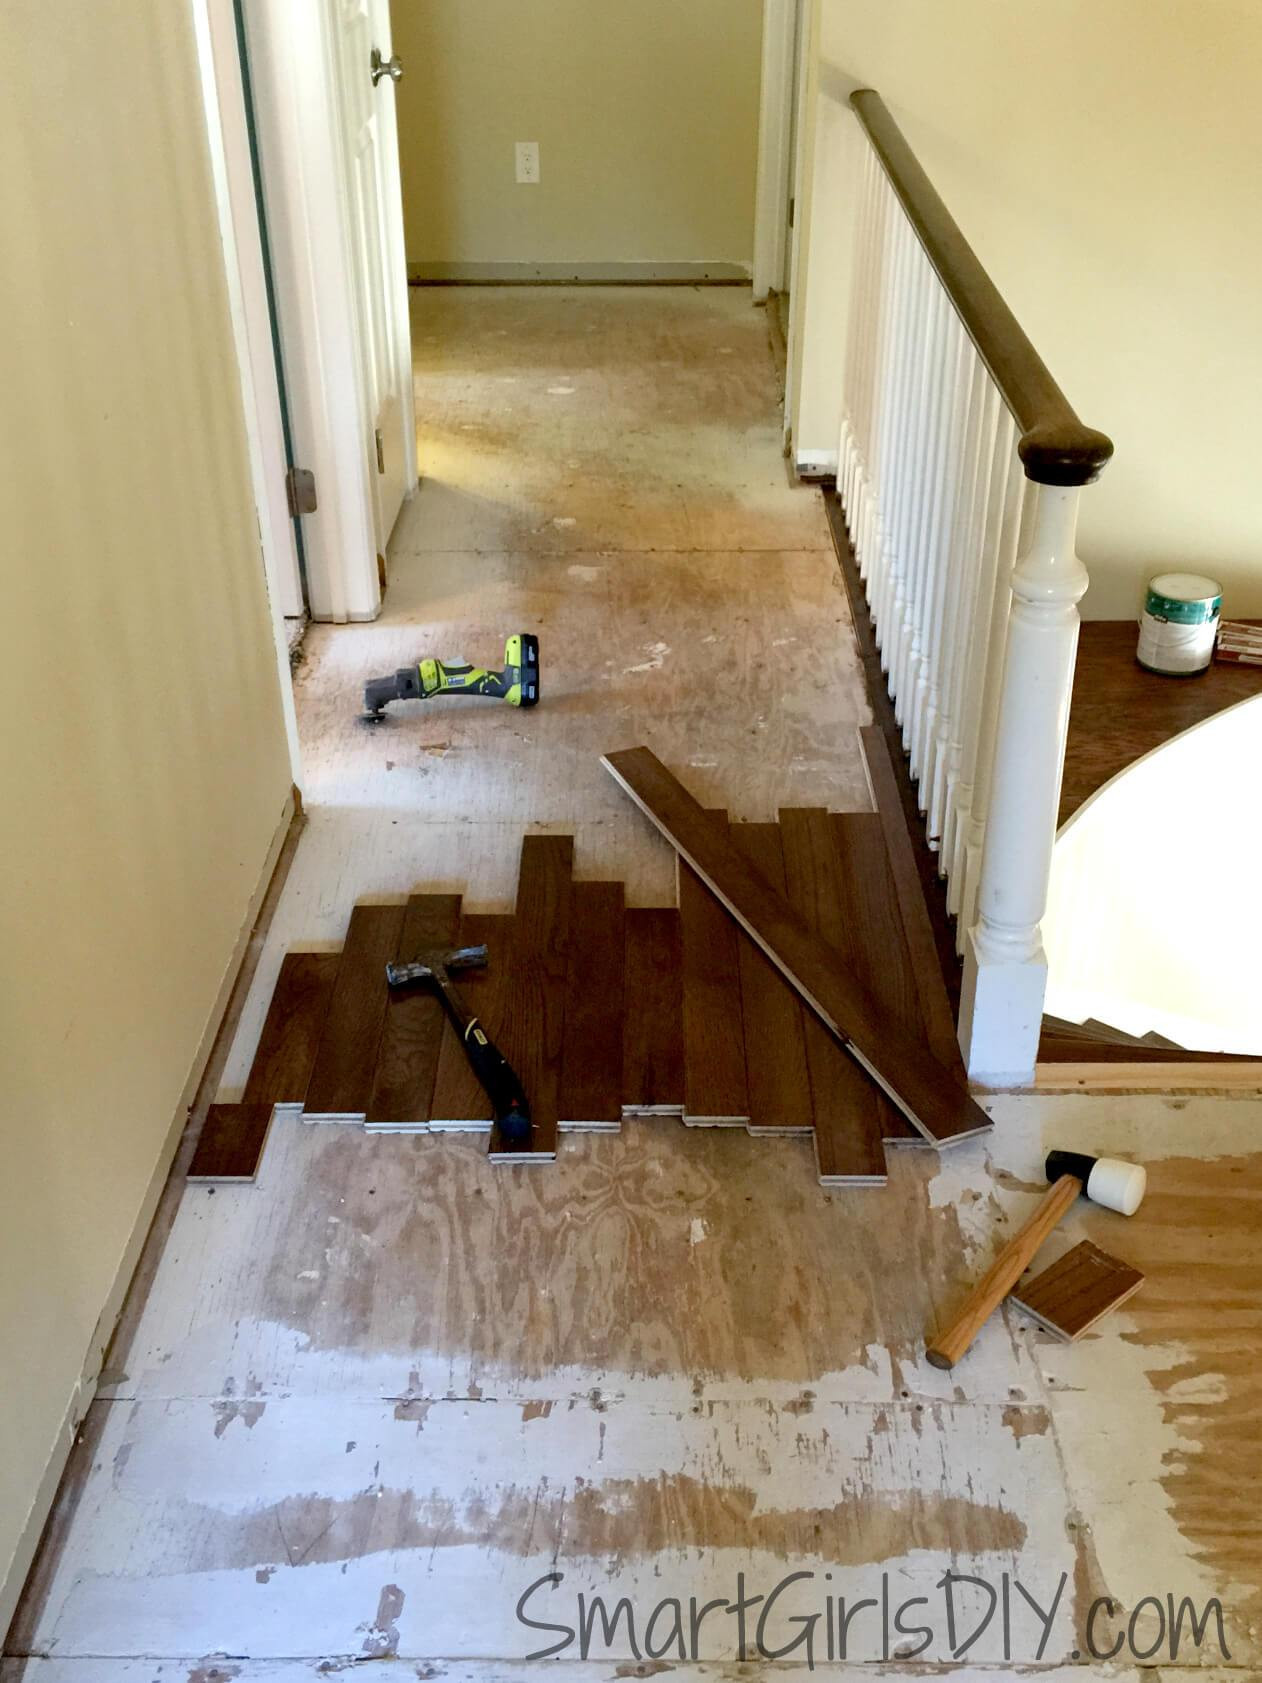 10 Cute How to Install the Hardwood Floor by Yourself 2021 free download how to install the hardwood floor by yourself of upstairs hallway 1 installing hardwood floors within laying out bruce hardwood flooring